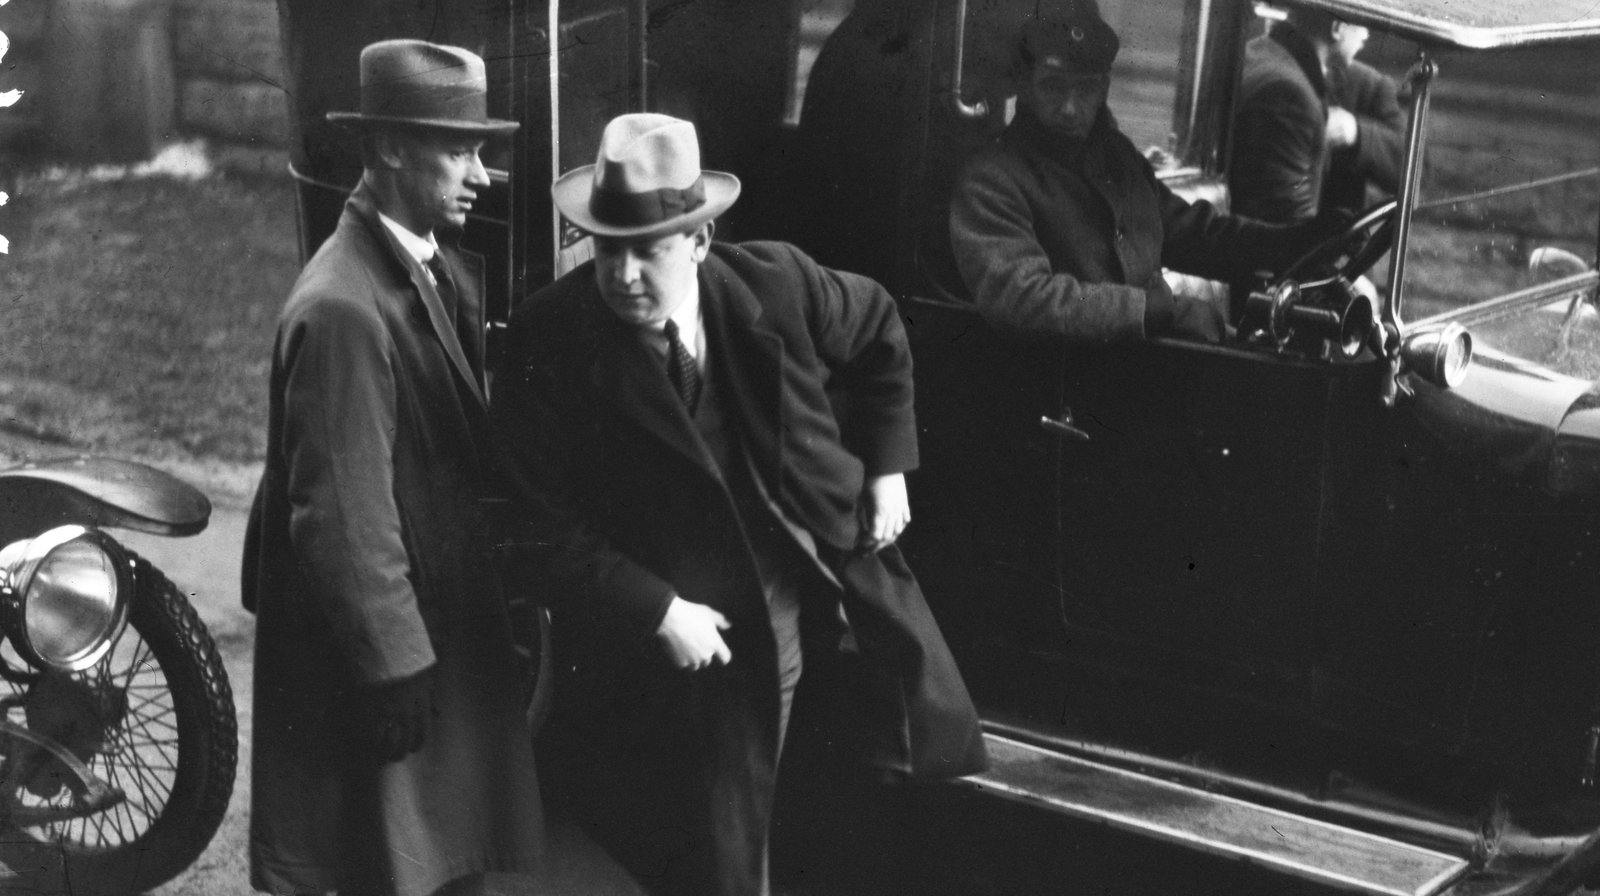 Image - Michael Collins had little faith in the future commission. Photo: Independent News And Media/Getty Images